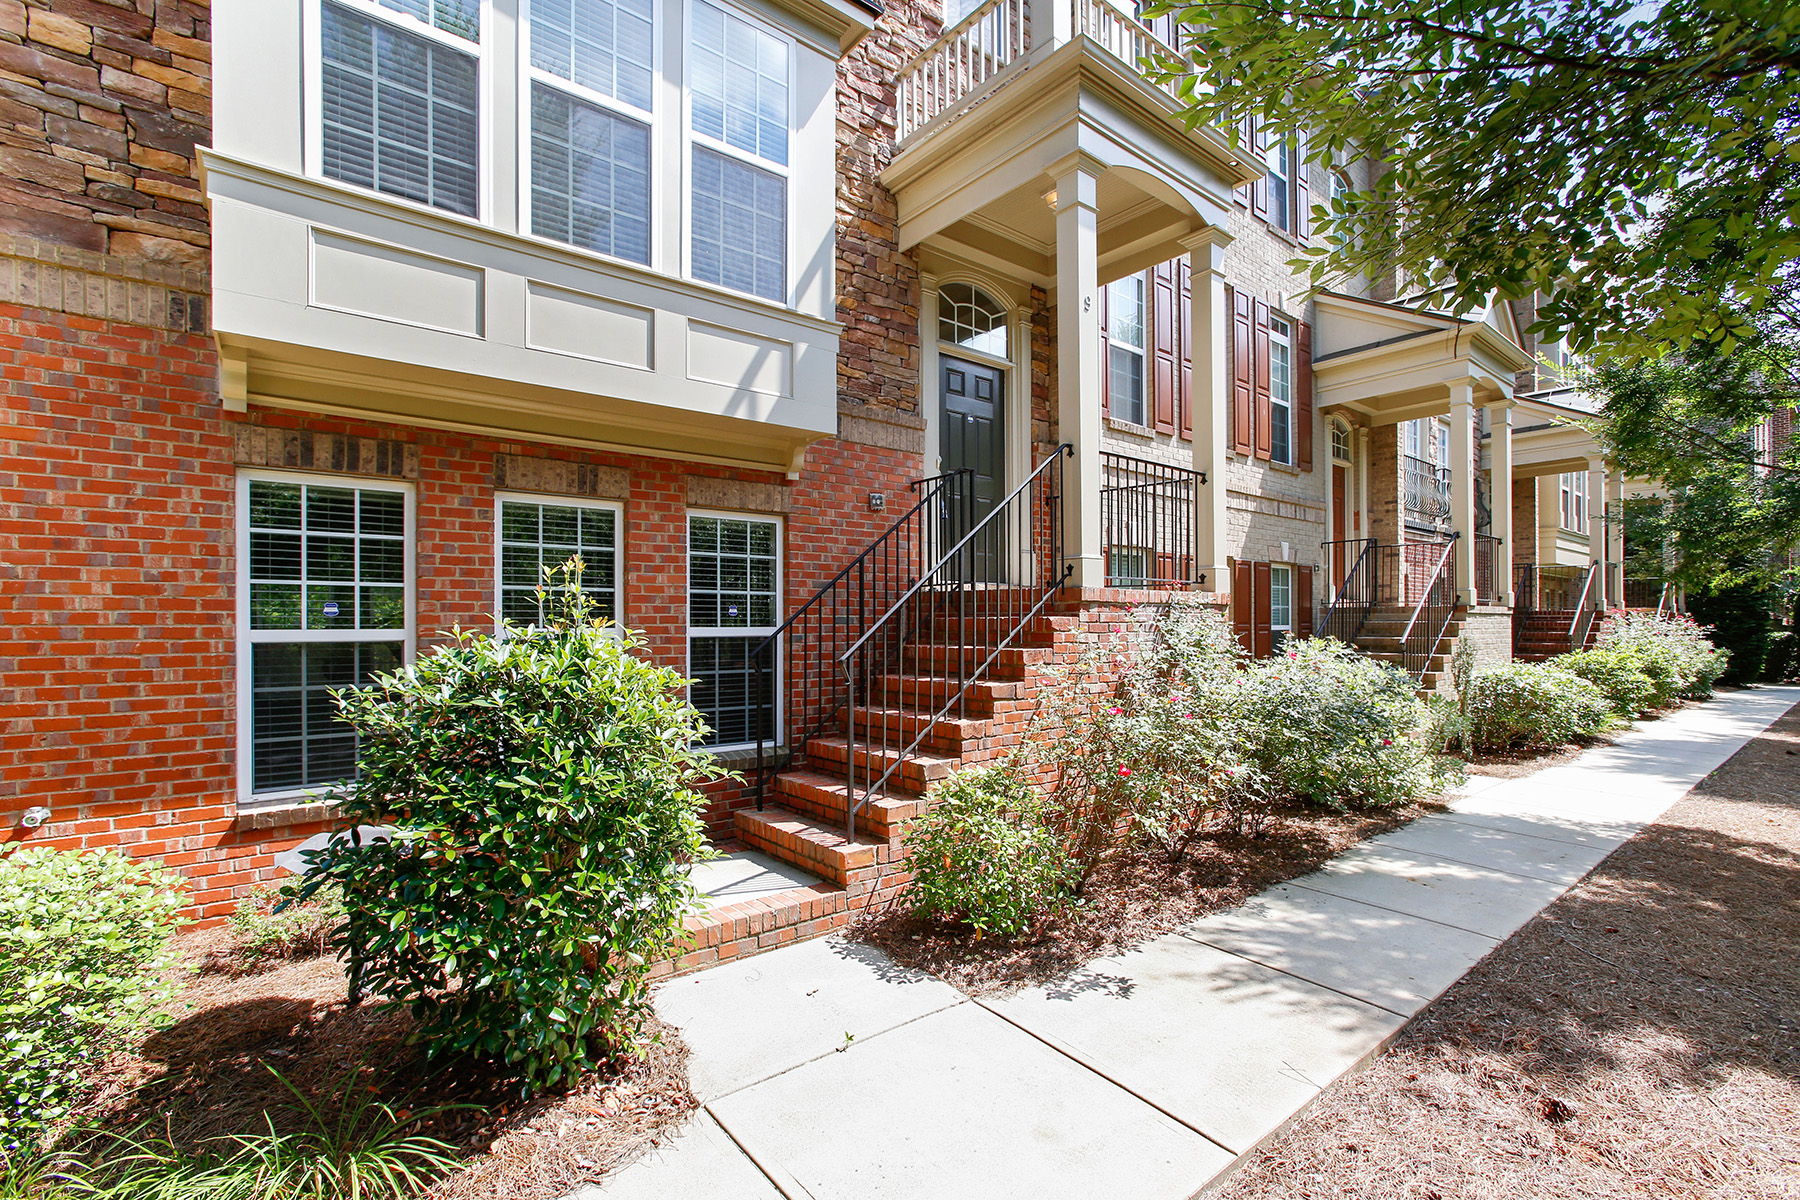 townhouses のために 売買 アット Handsome Brick Town Home In Sought After Brownstones At Decatur 9 High Gate Trl, Decatur, ジョージア 30330 アメリカ